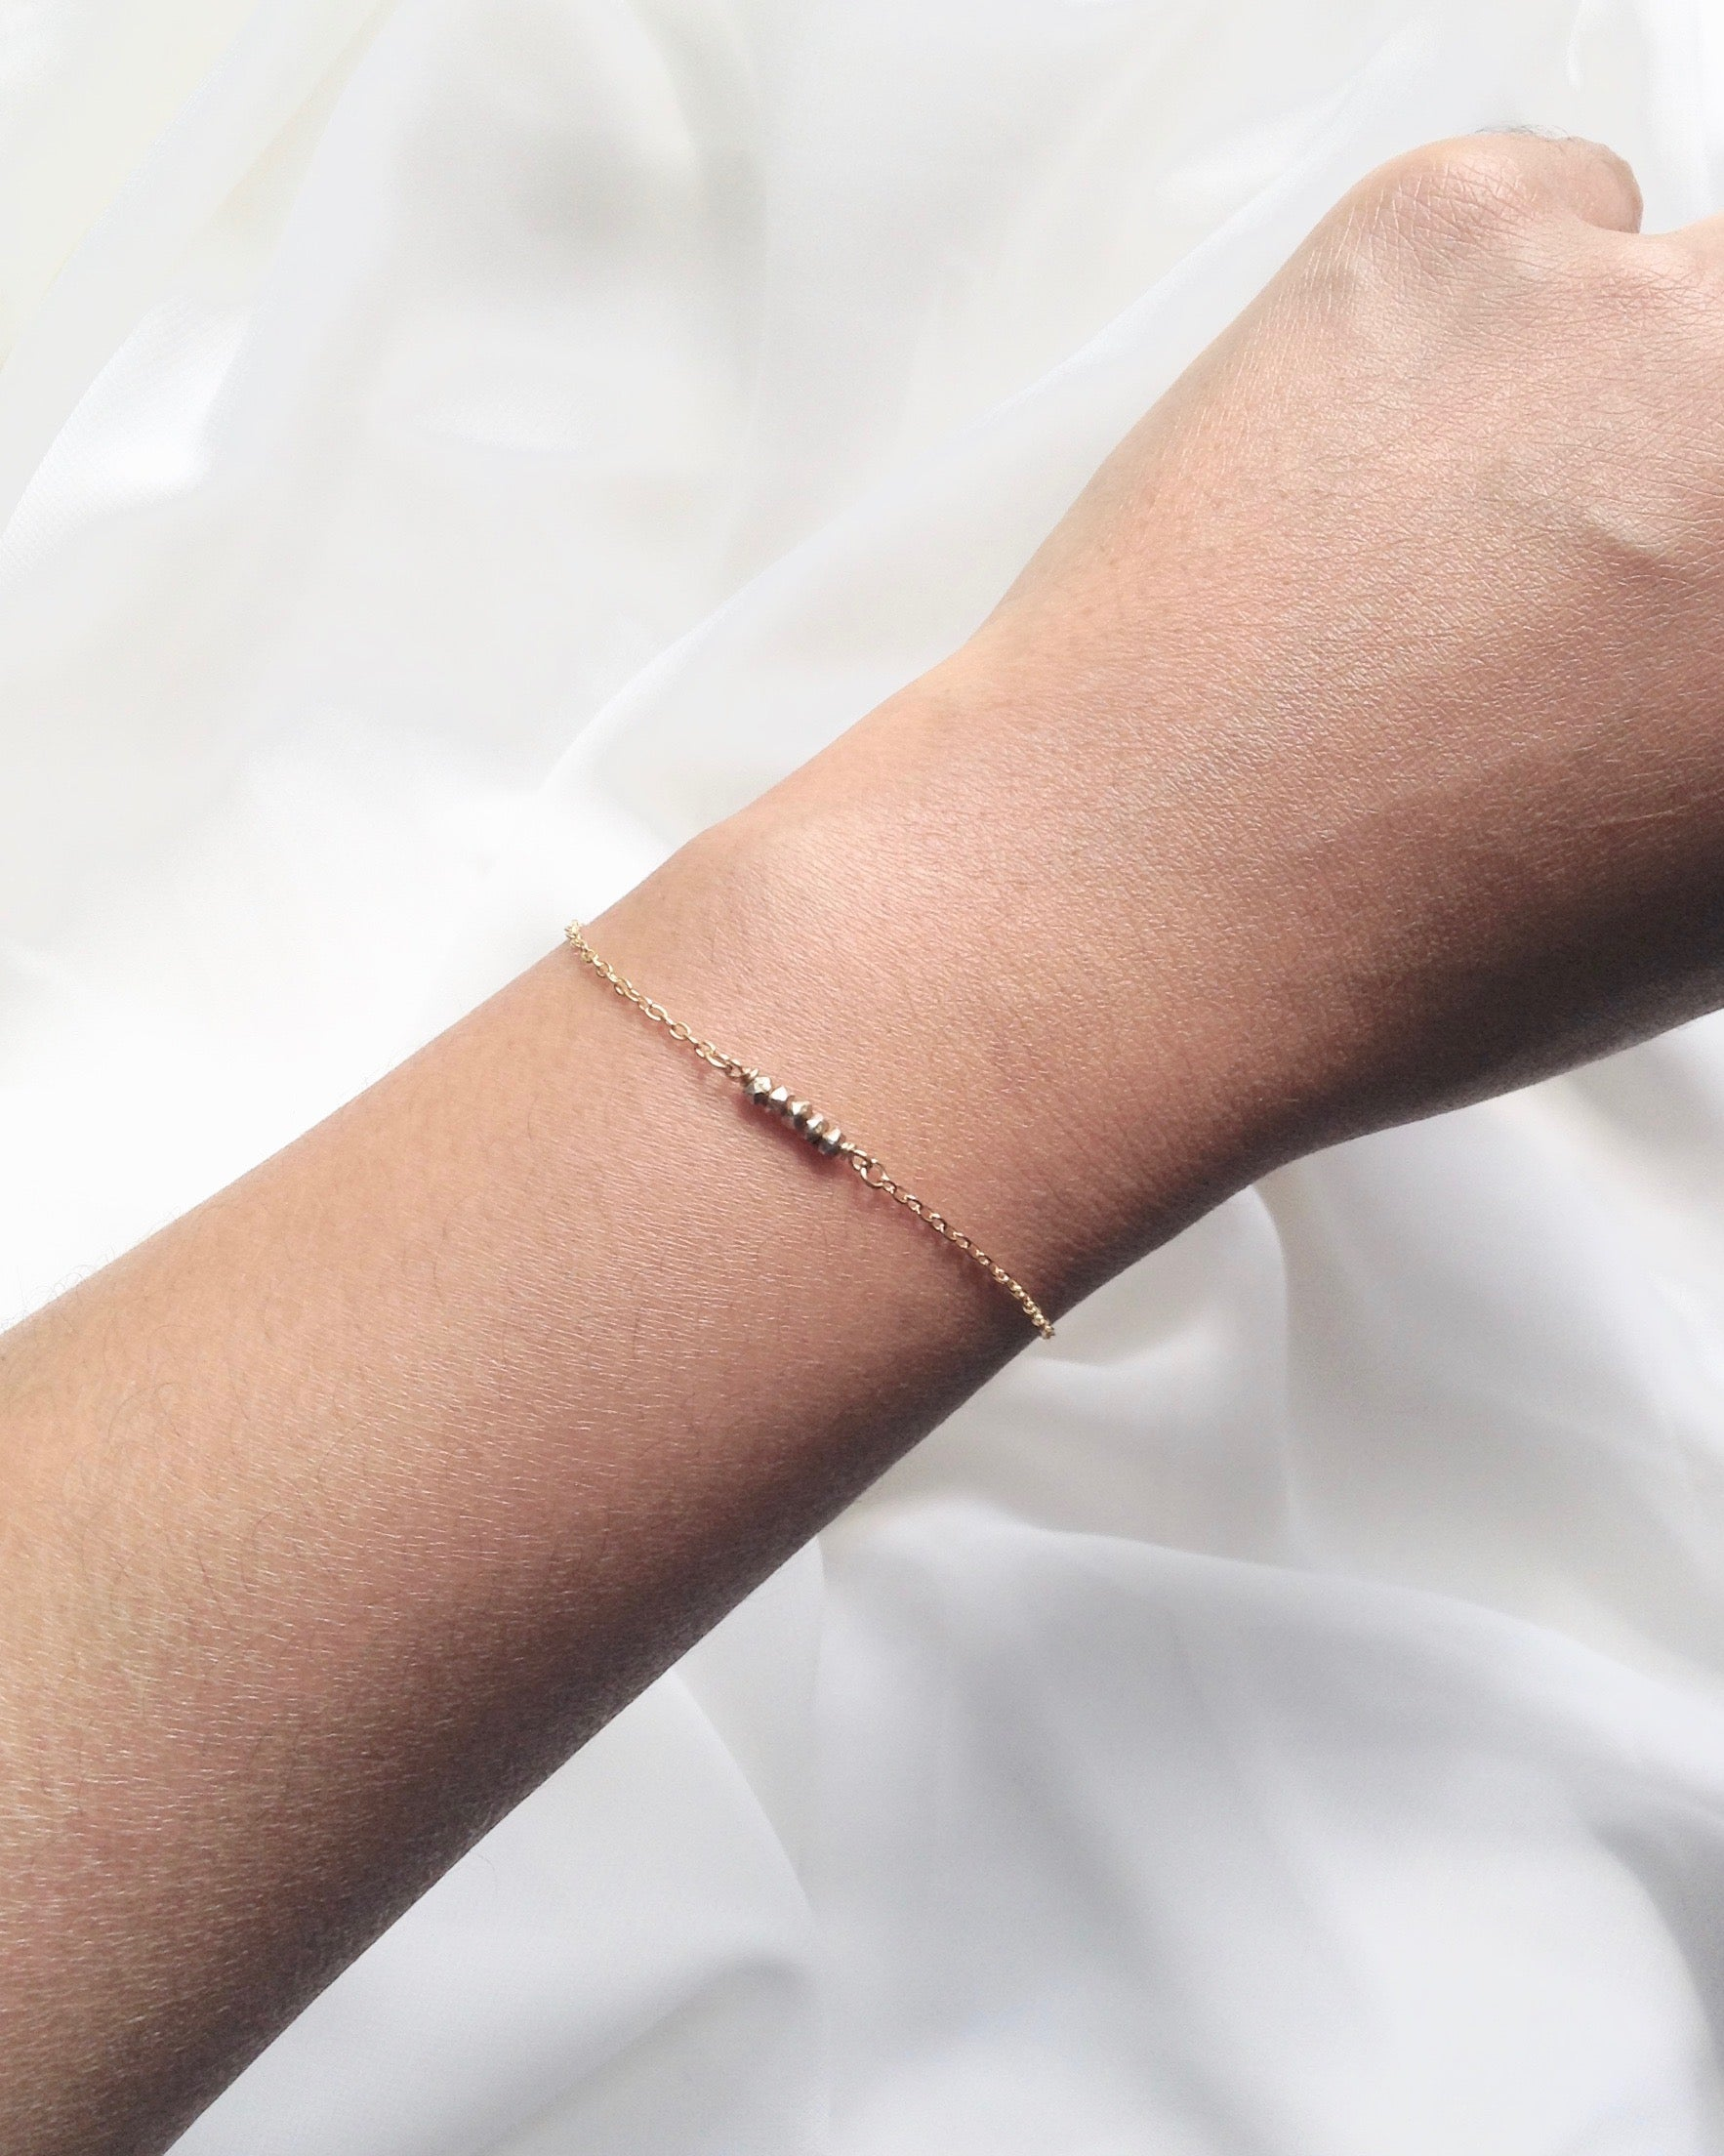 Tiny Nugget Bracelet | Dainty Everyday Chain Bracelet | IB Jewelry